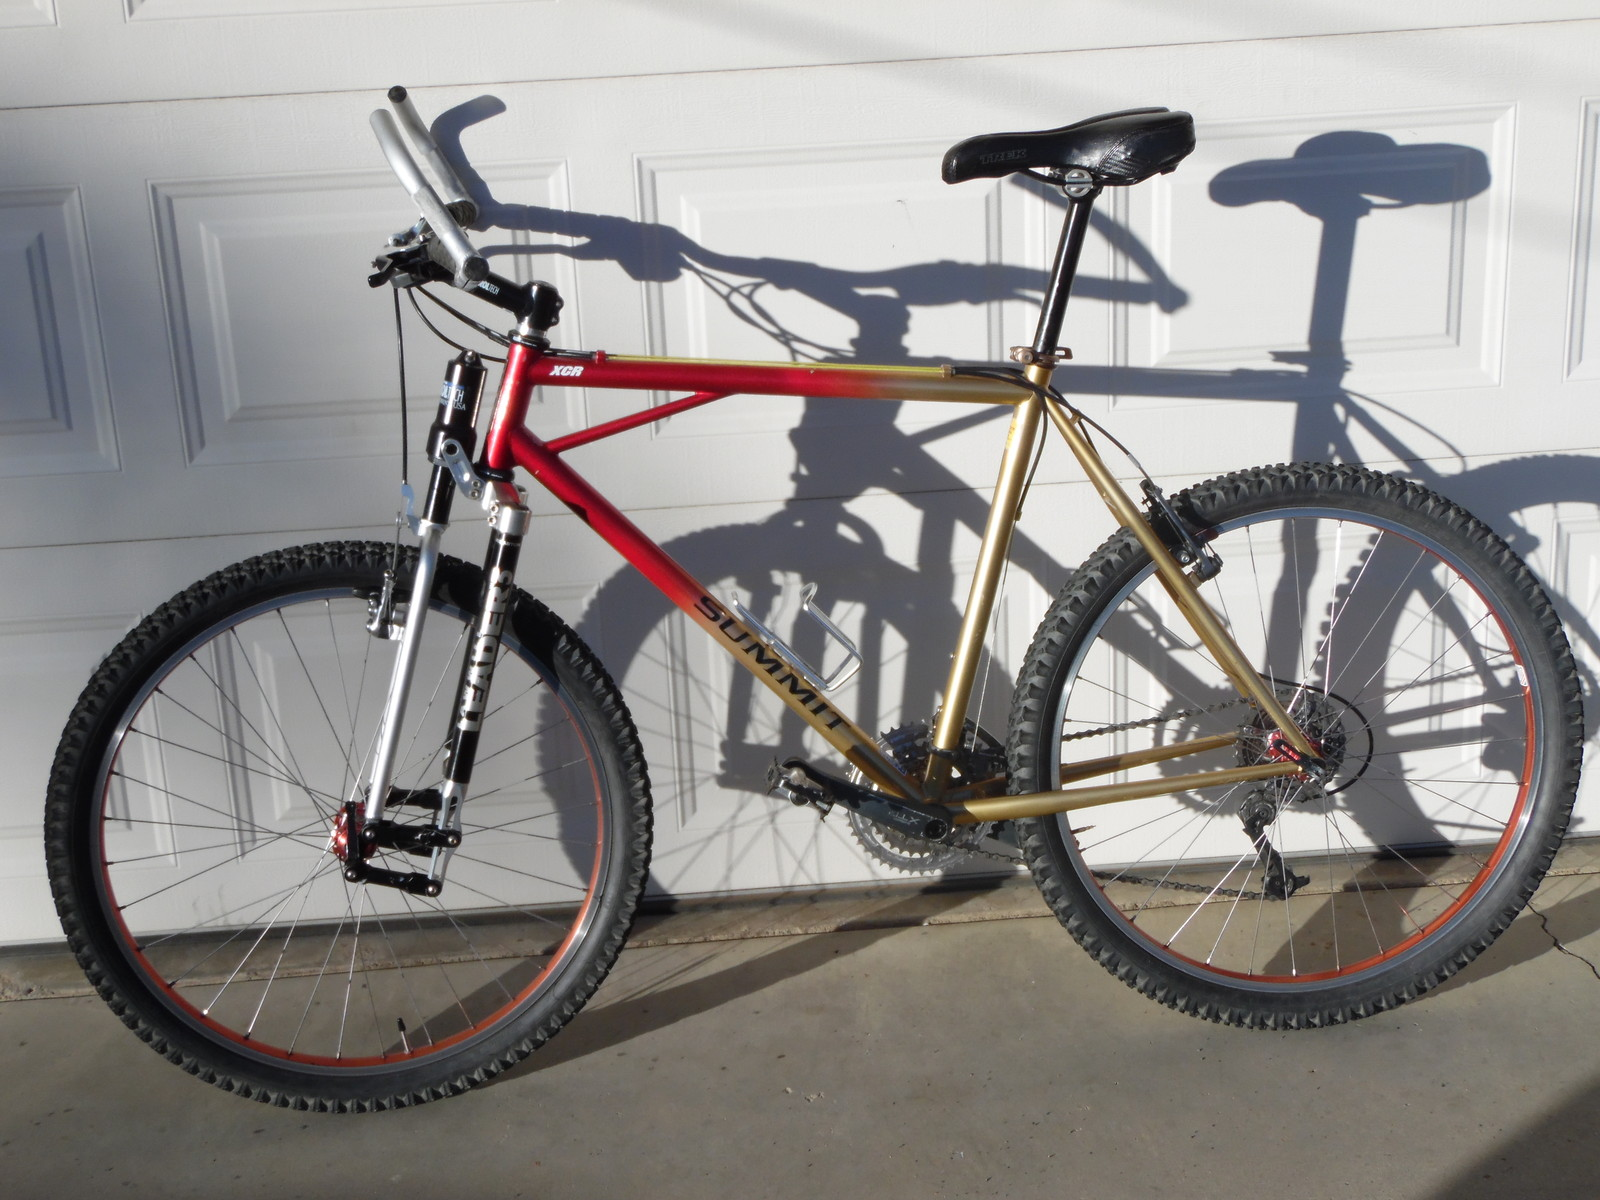 Tange Prestige double butted Cro-moly frames Durable yet plush ride.